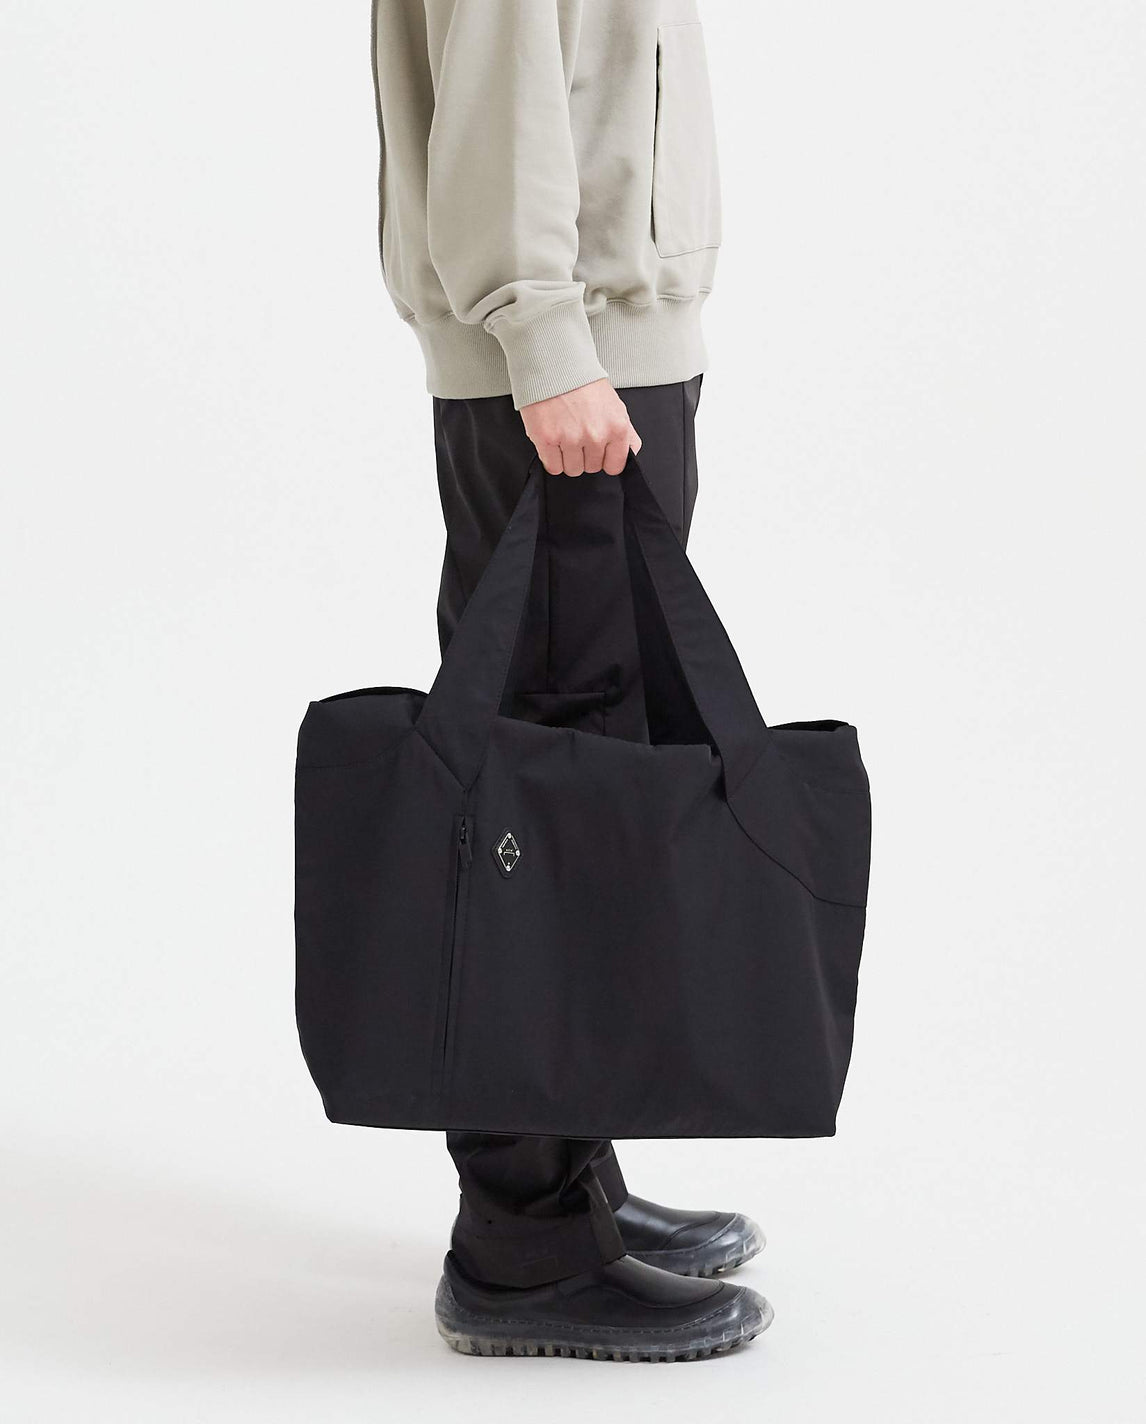 Rhombus Tote Bag - Black MENS A-COLD-WALL